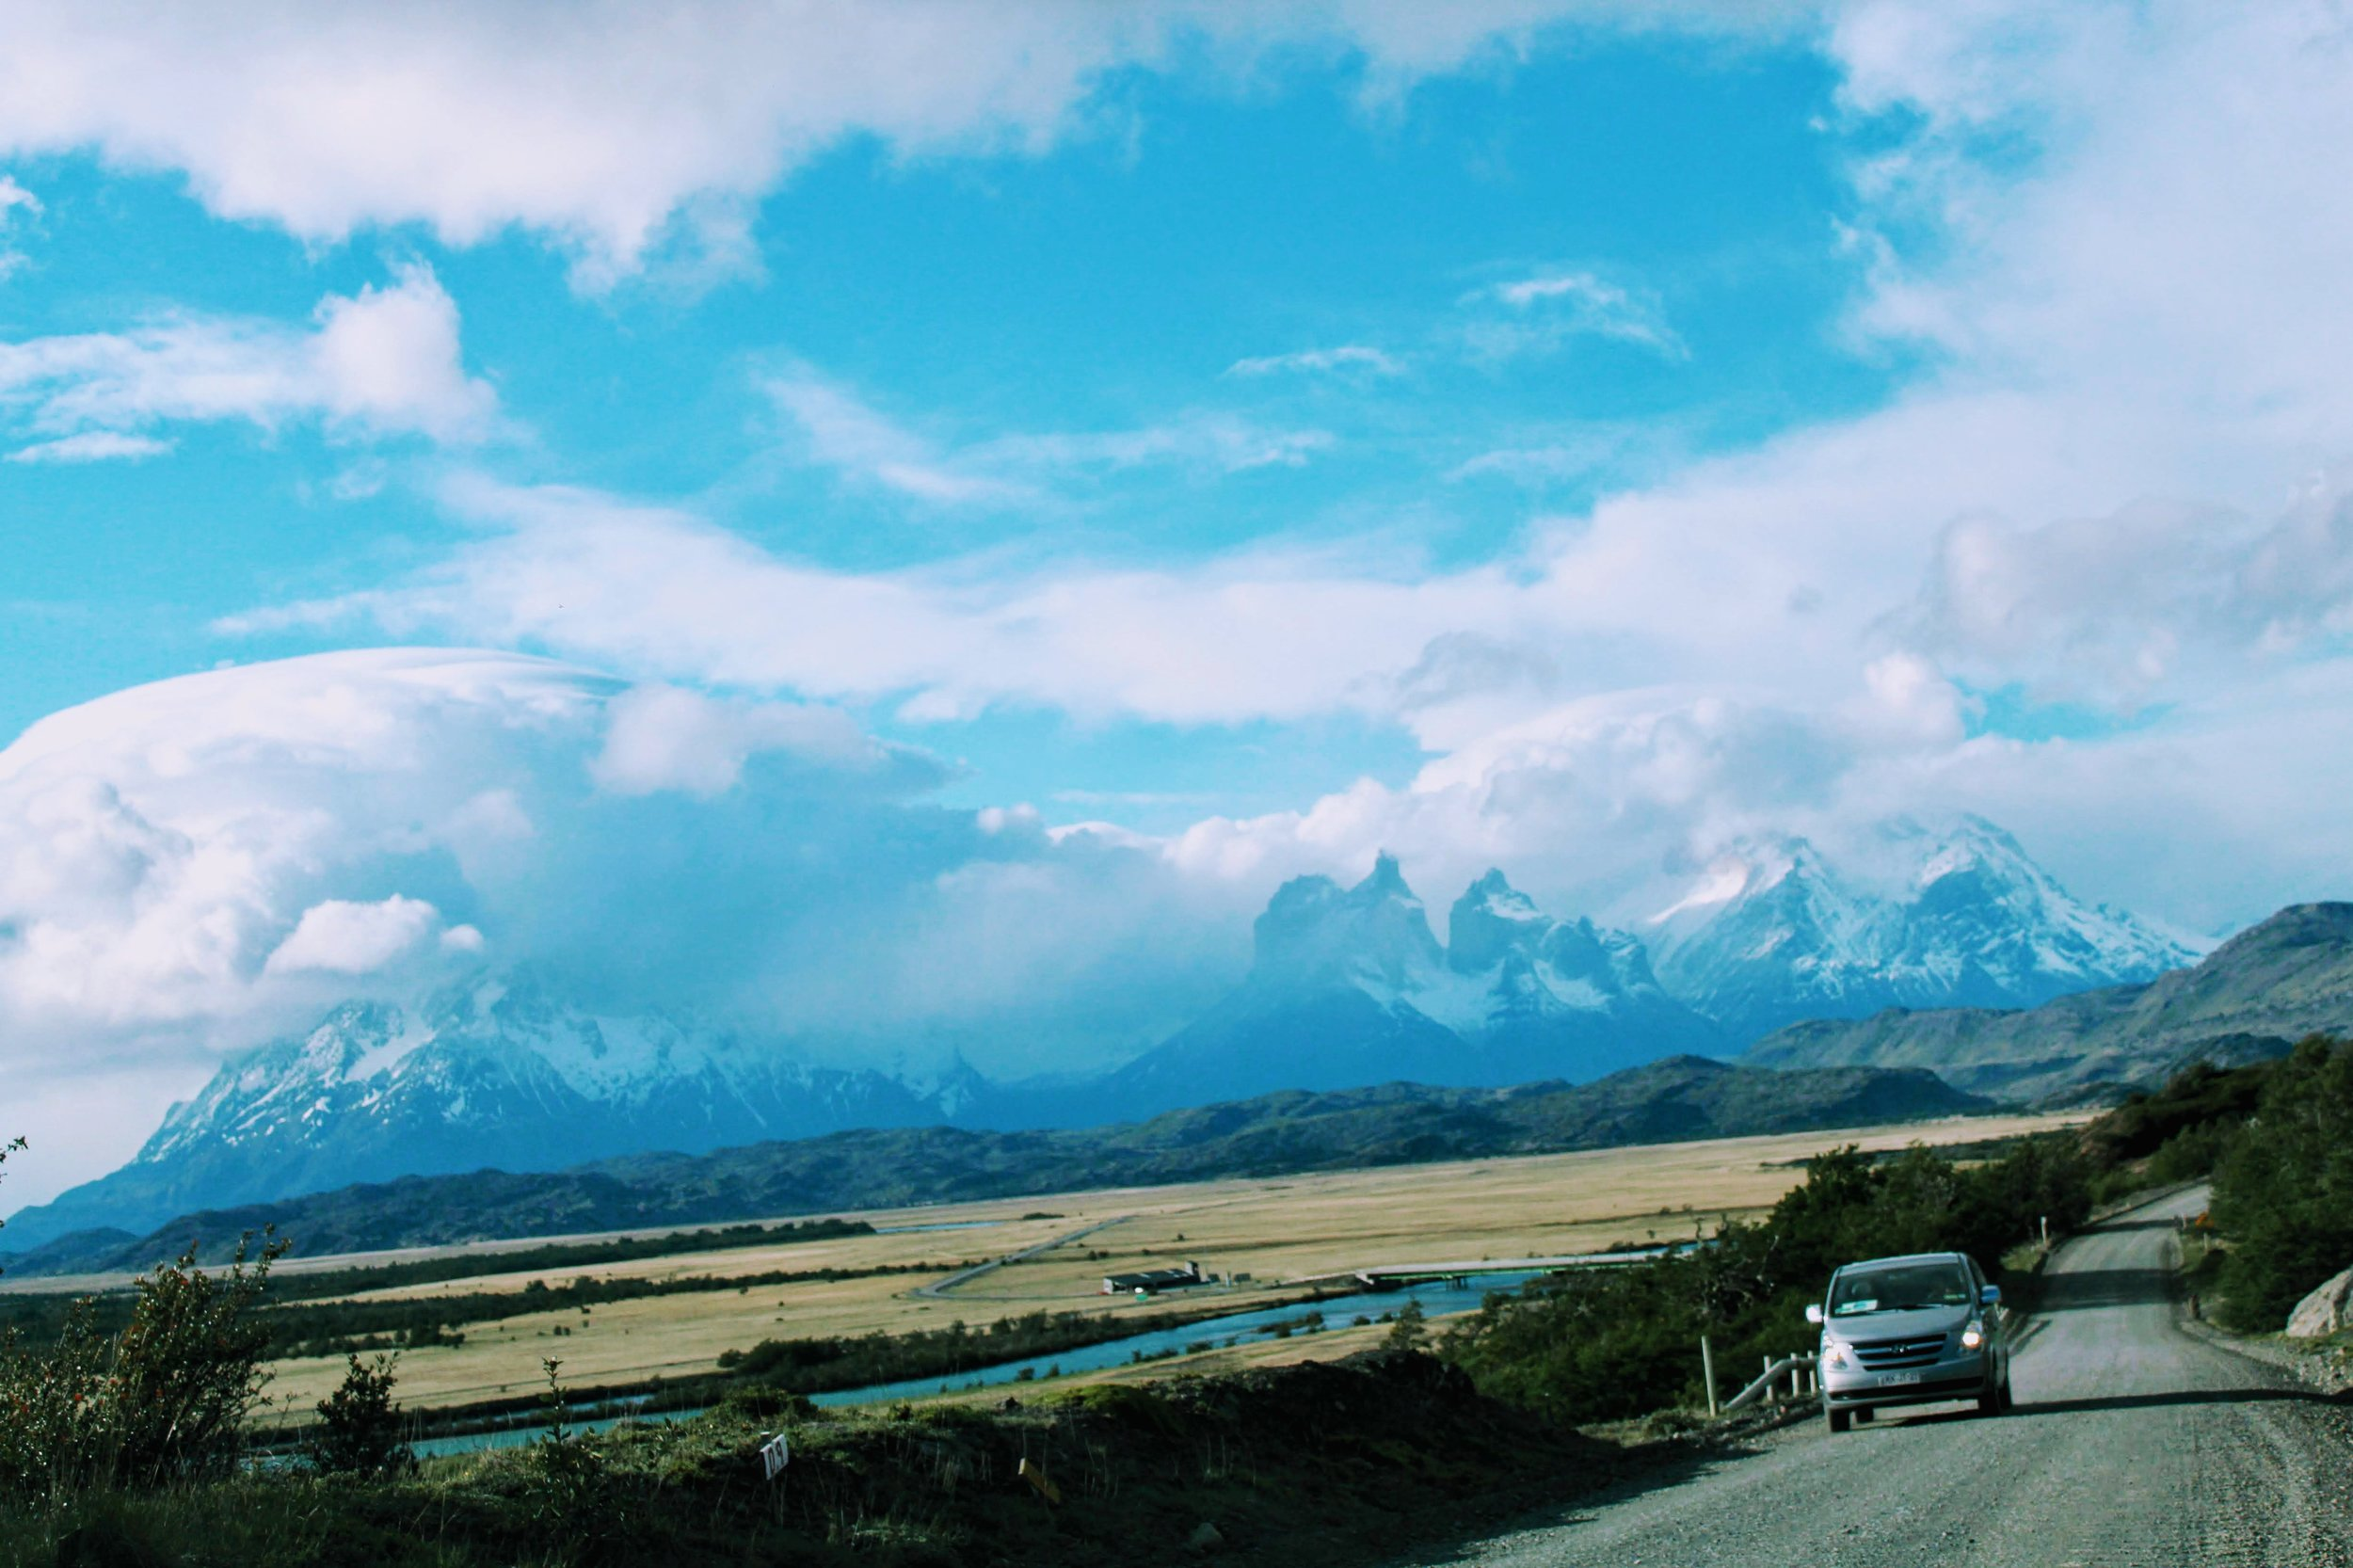 Road trip in Torres del Paine National Park